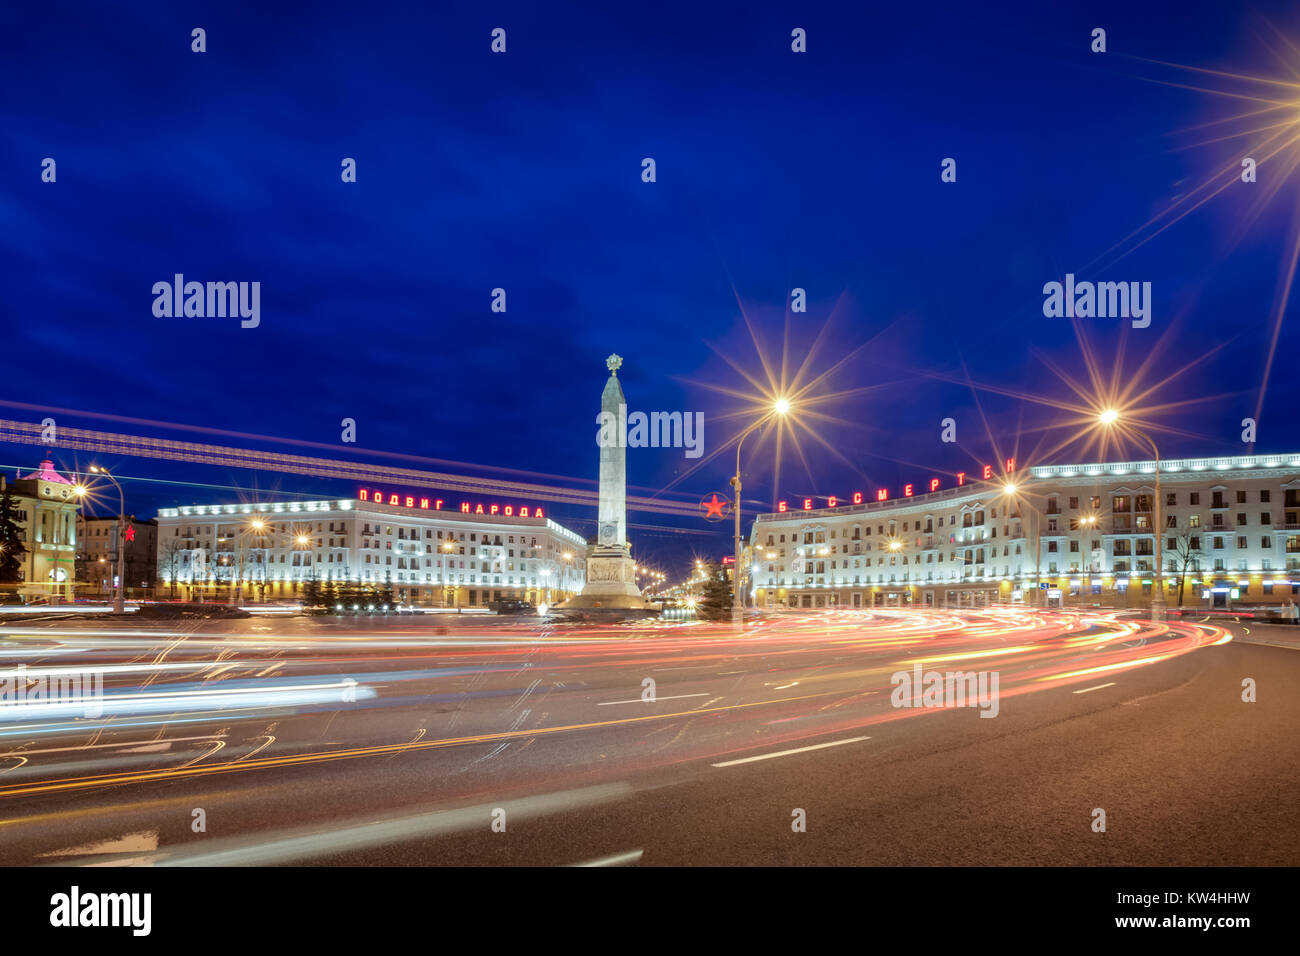 Victory Square in Minsk - Stock Image